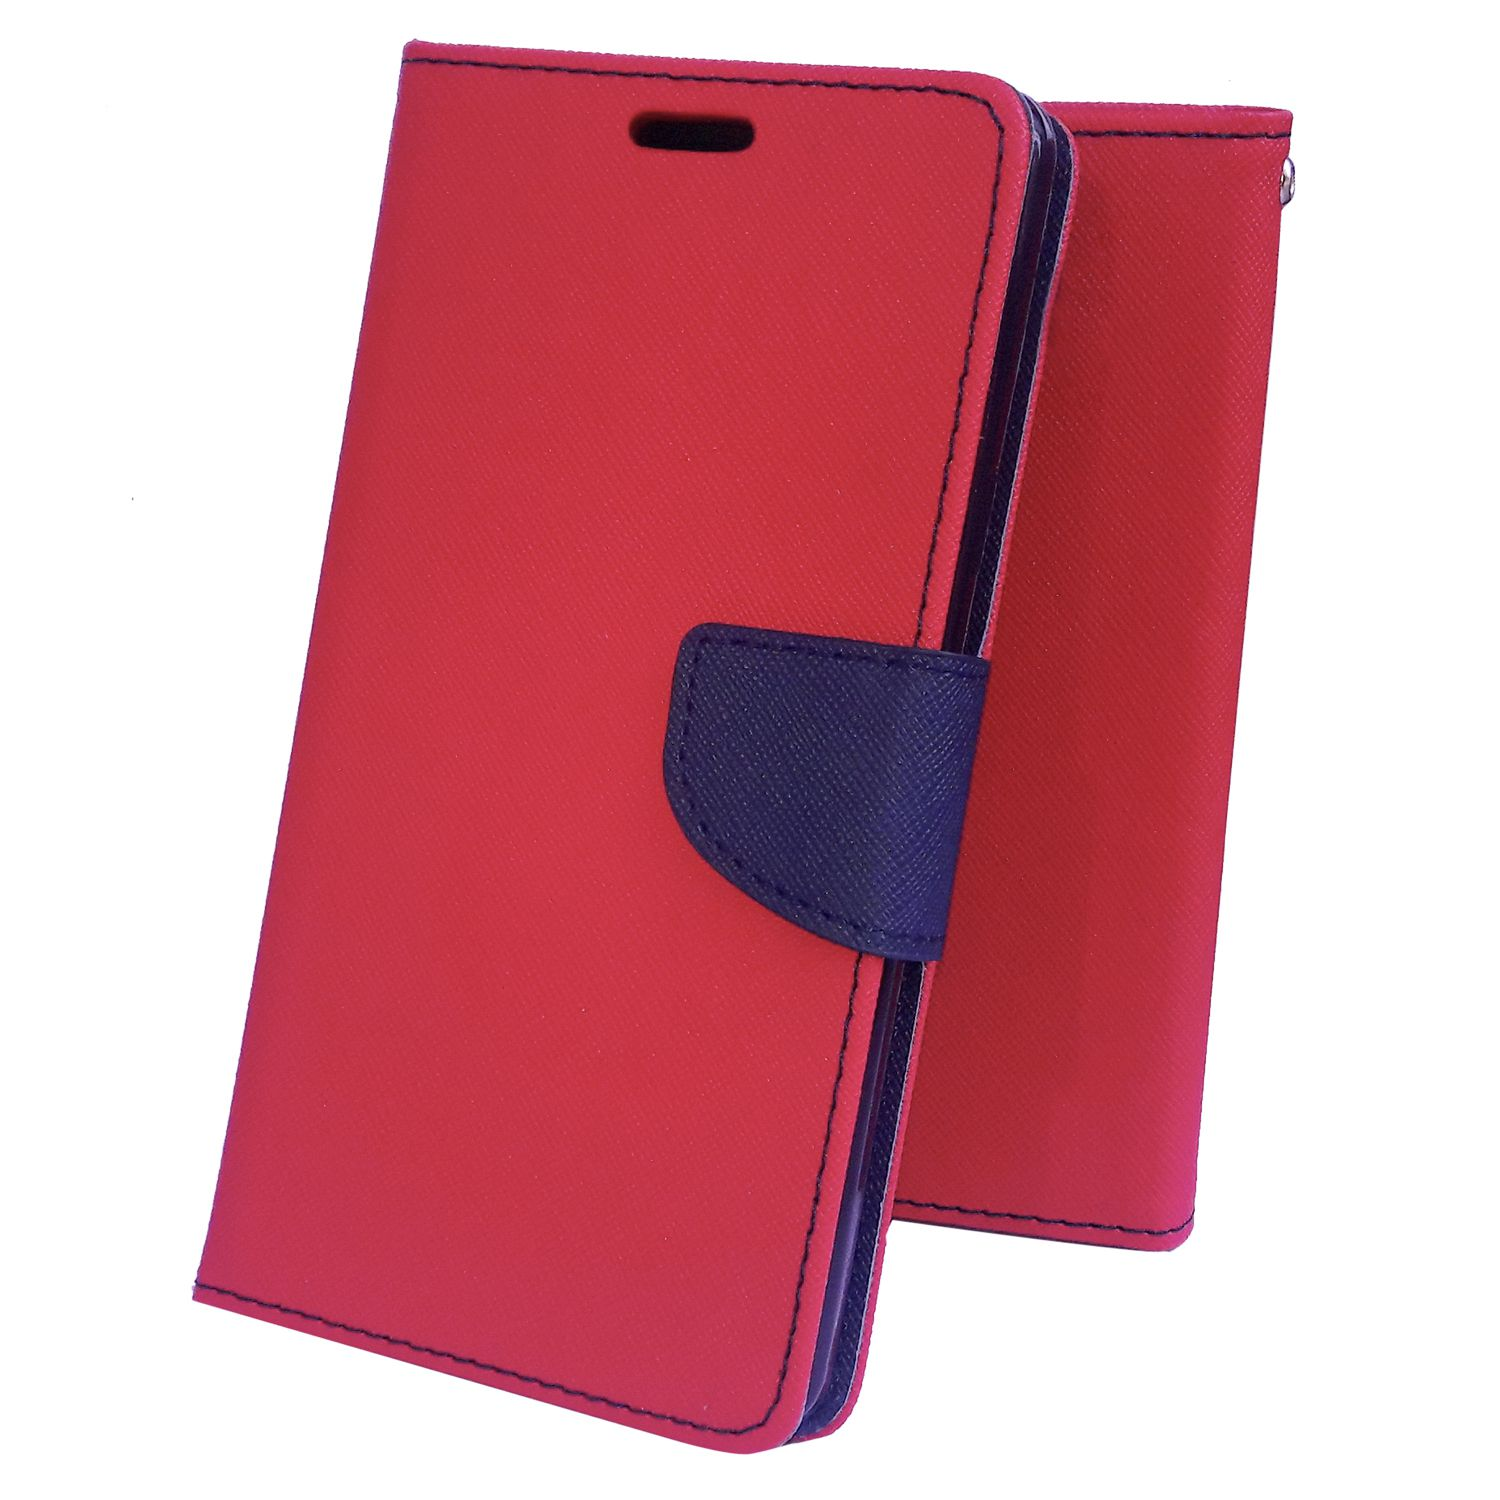 Moblo Flip cover(Red)  For LG G3